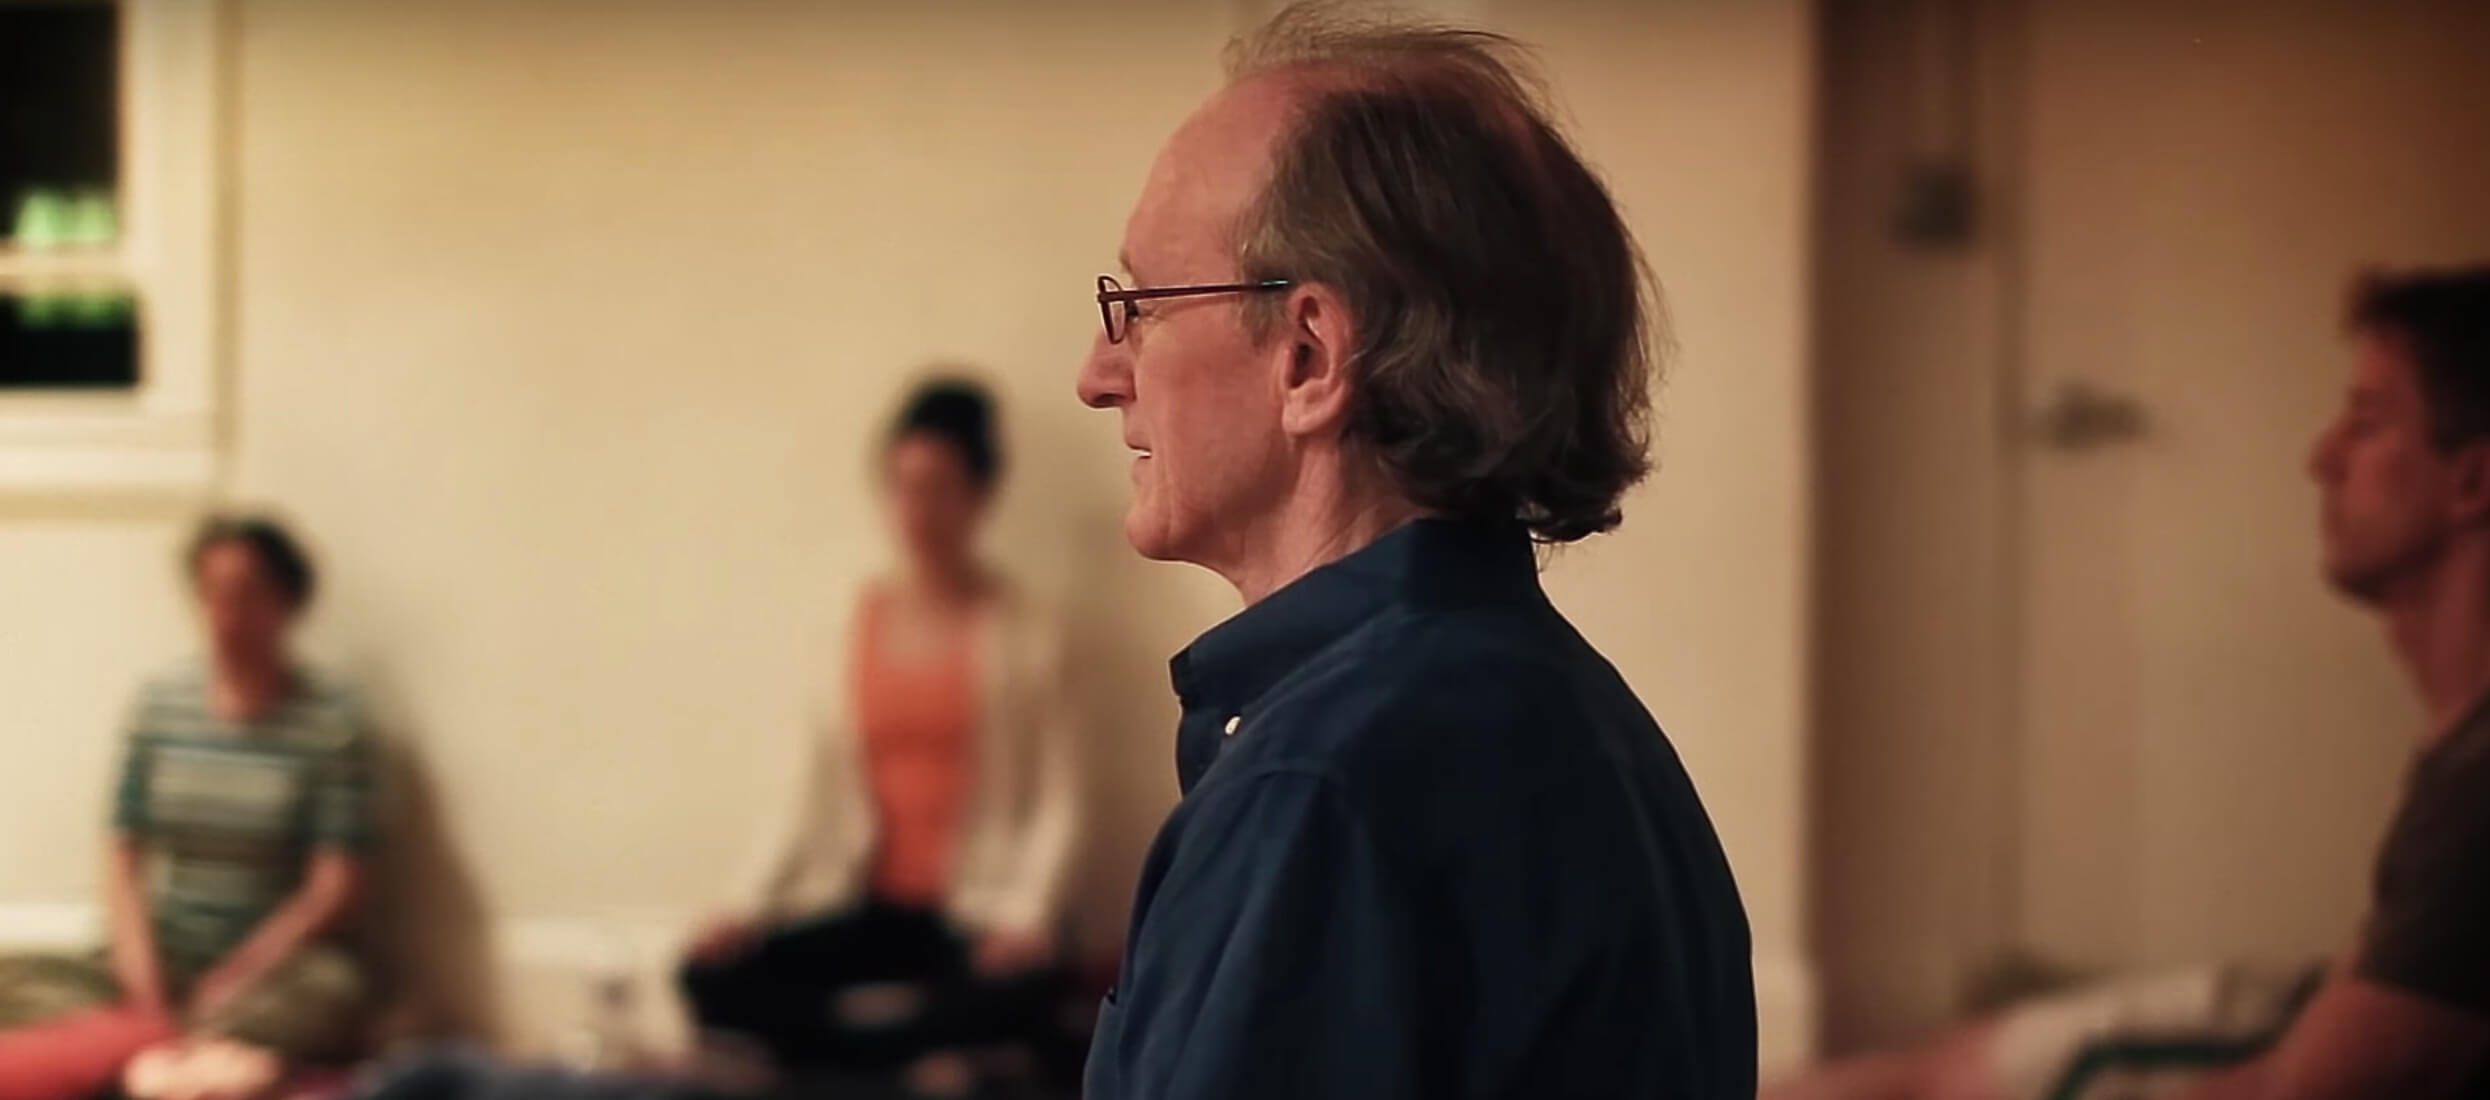 Hugh Byrne PhD - leading expert in the field of mindfulness and positive habit change